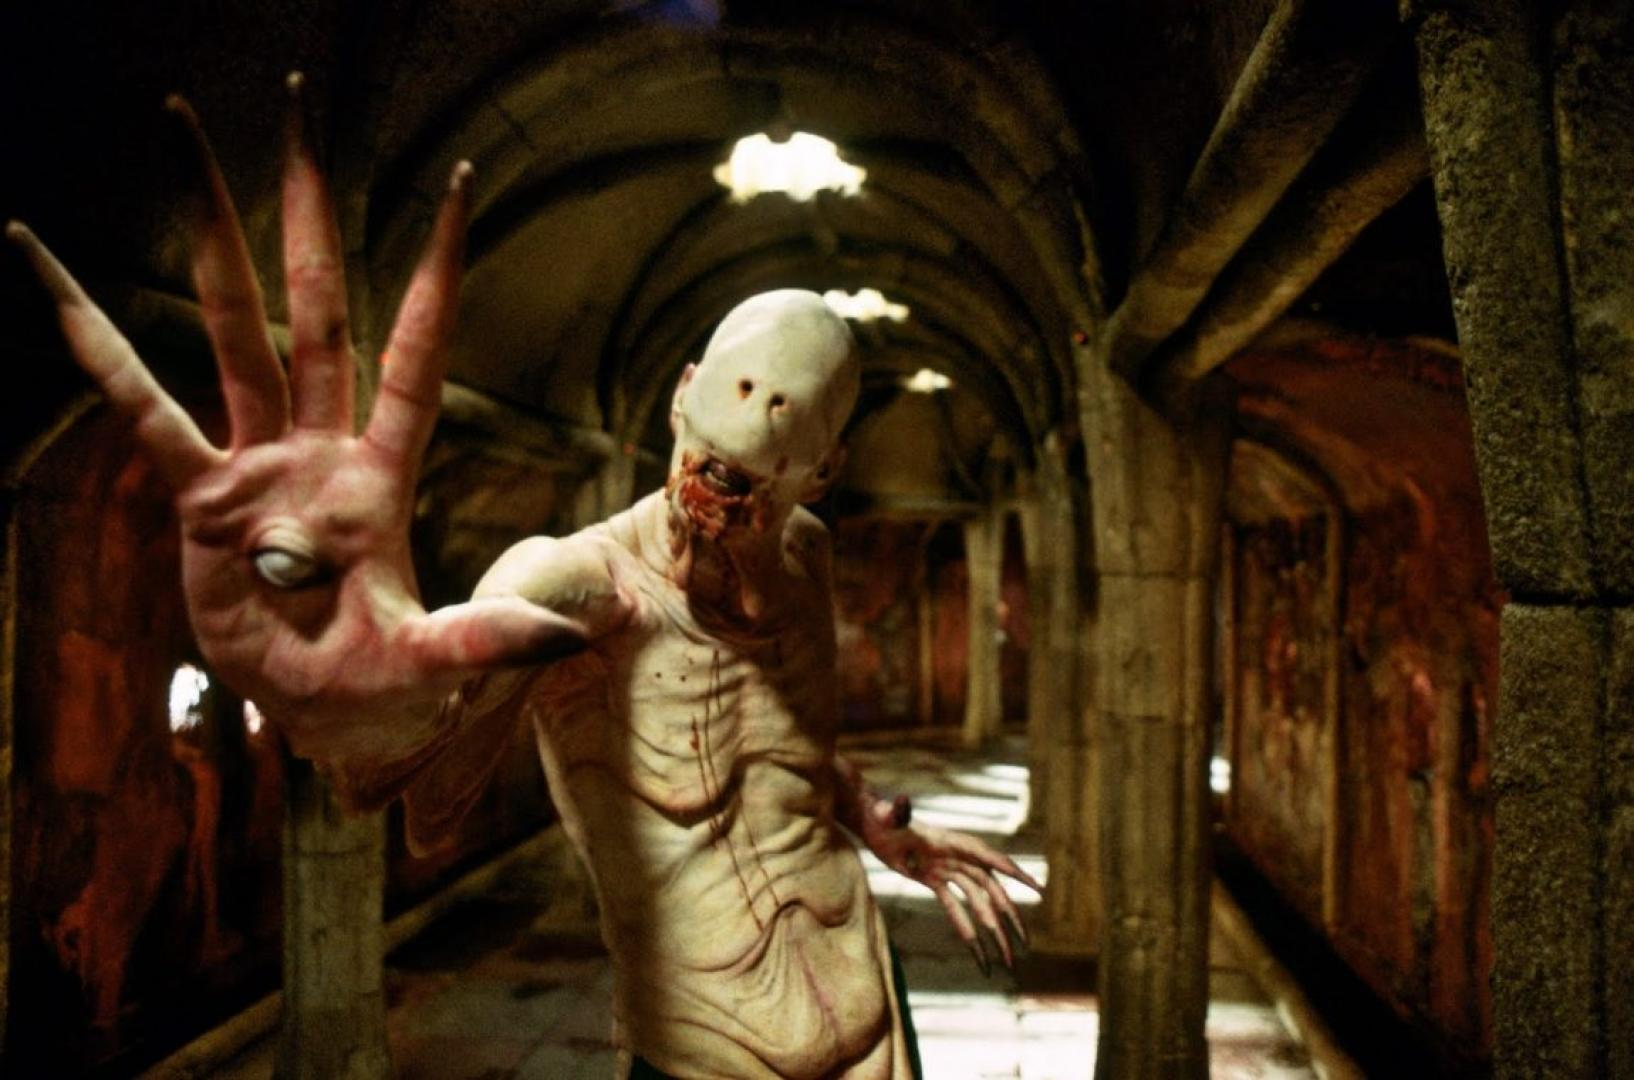 eli_roth_history_of_horror_creatures_7_kep